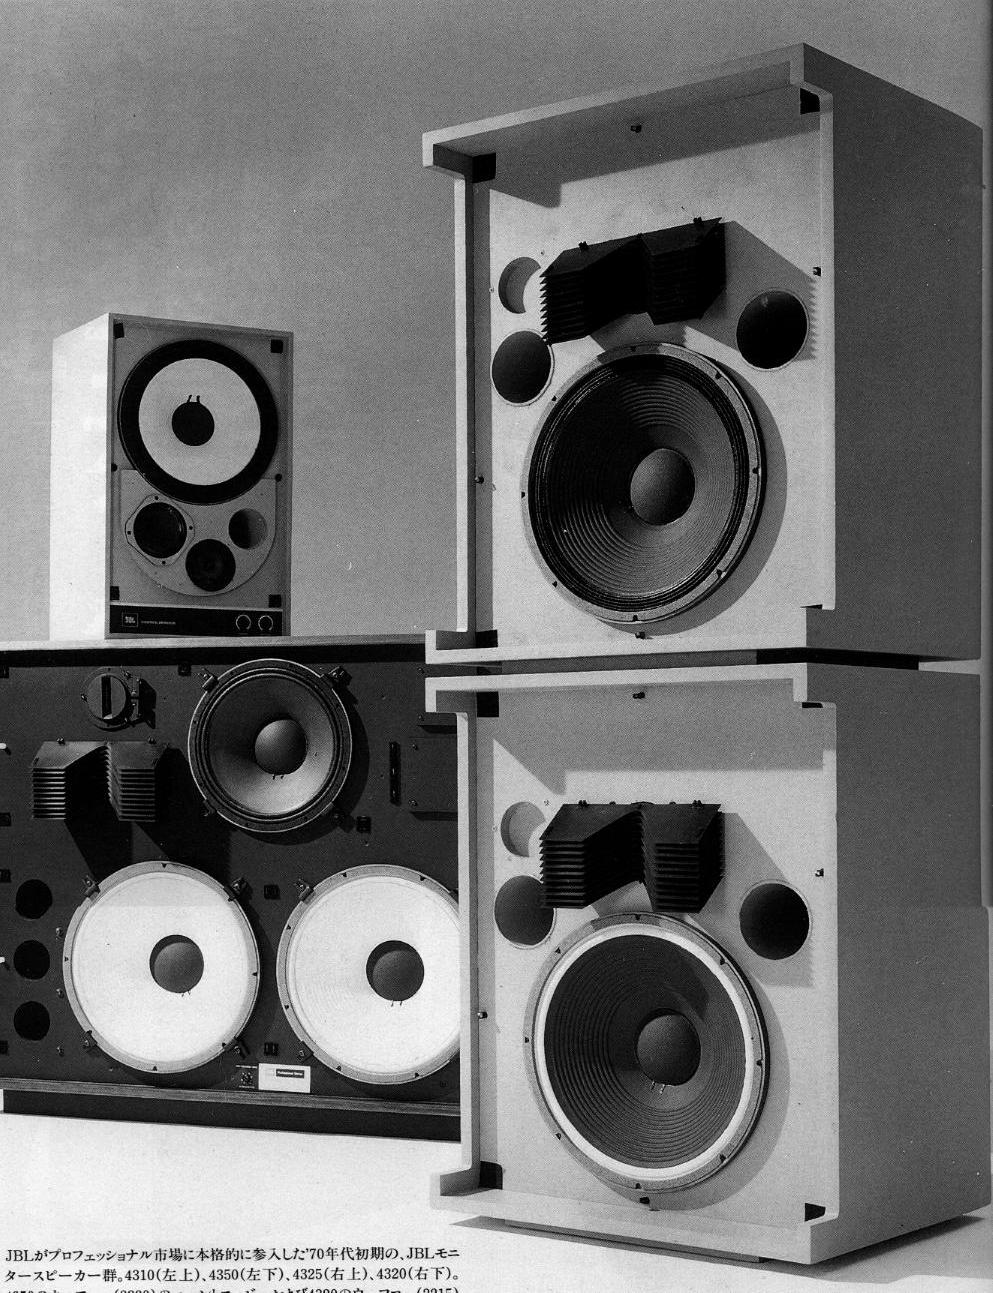 hight resolution of 1970 s jbl monitor lineup clockwise from top left 4310 4325 4320 and